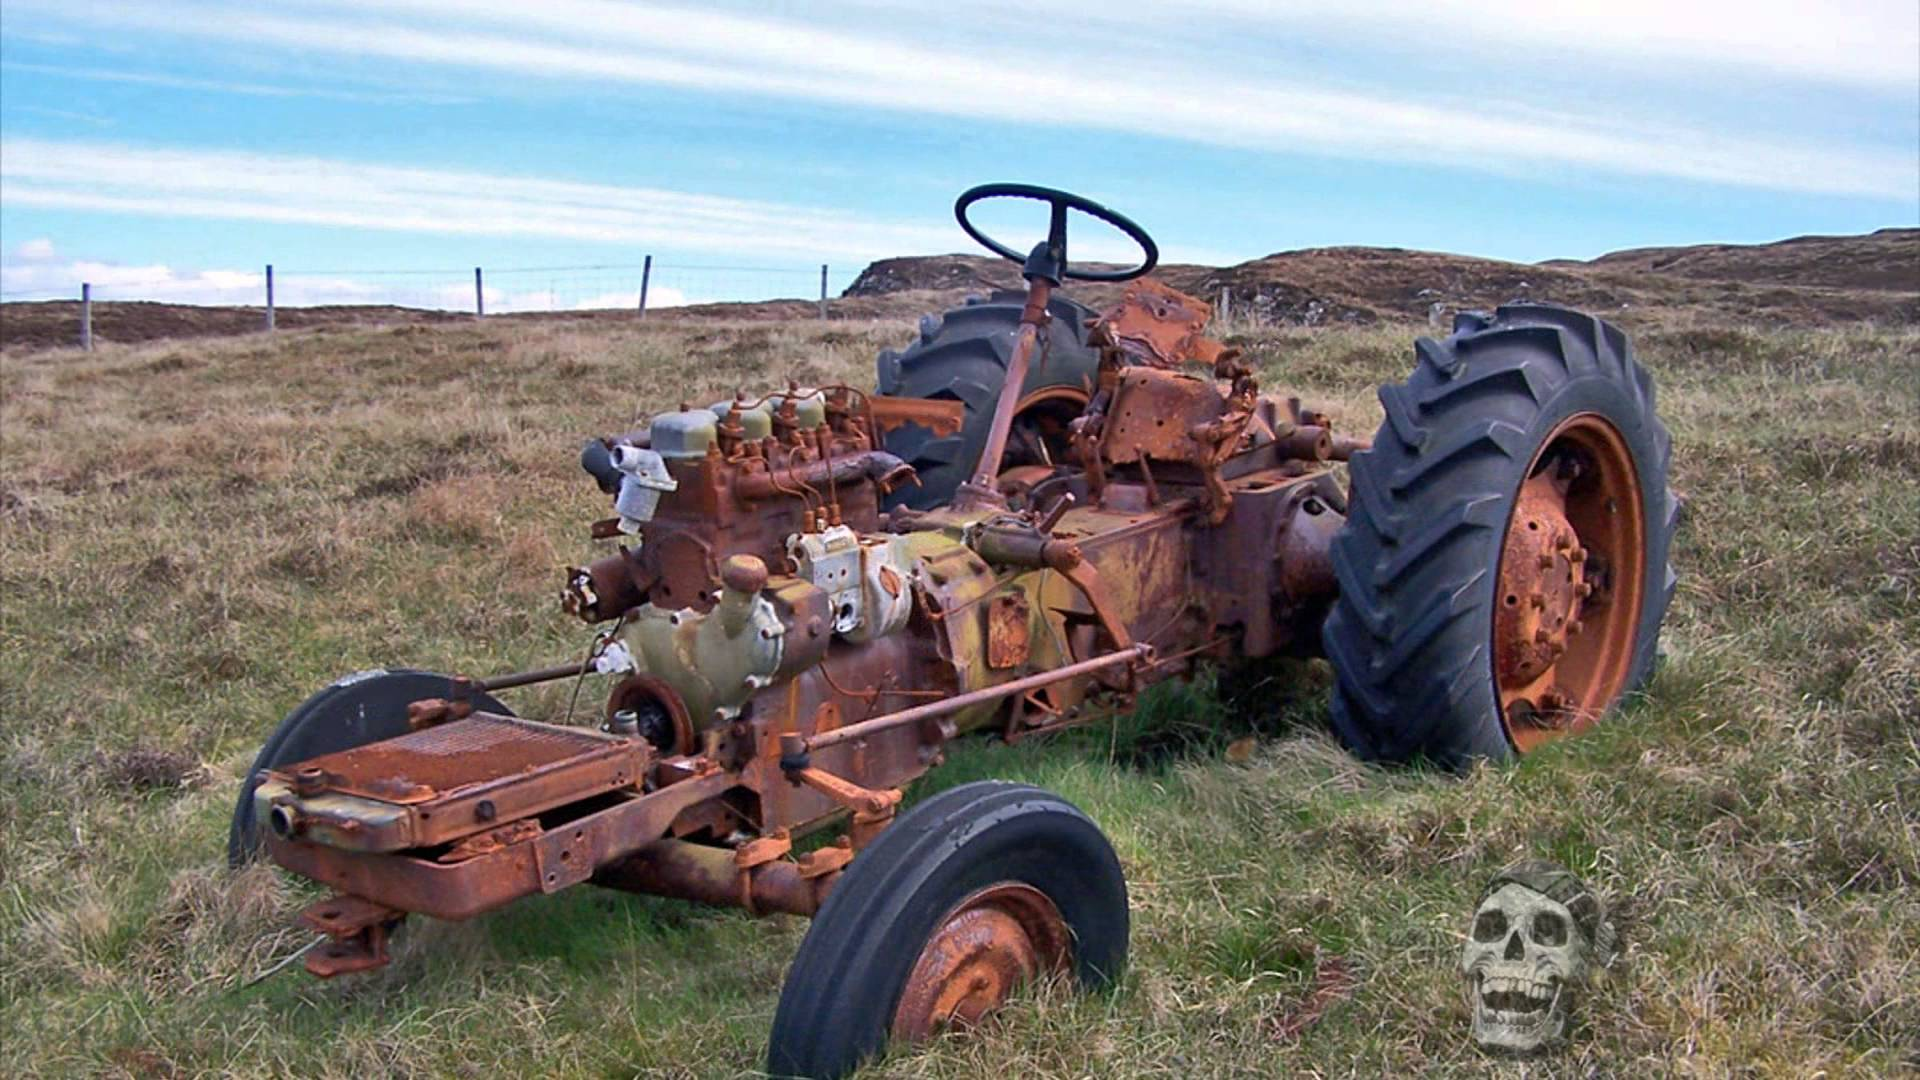 Old abandoned tractors 2016. Old rusty tractor abandoned 2016 ...